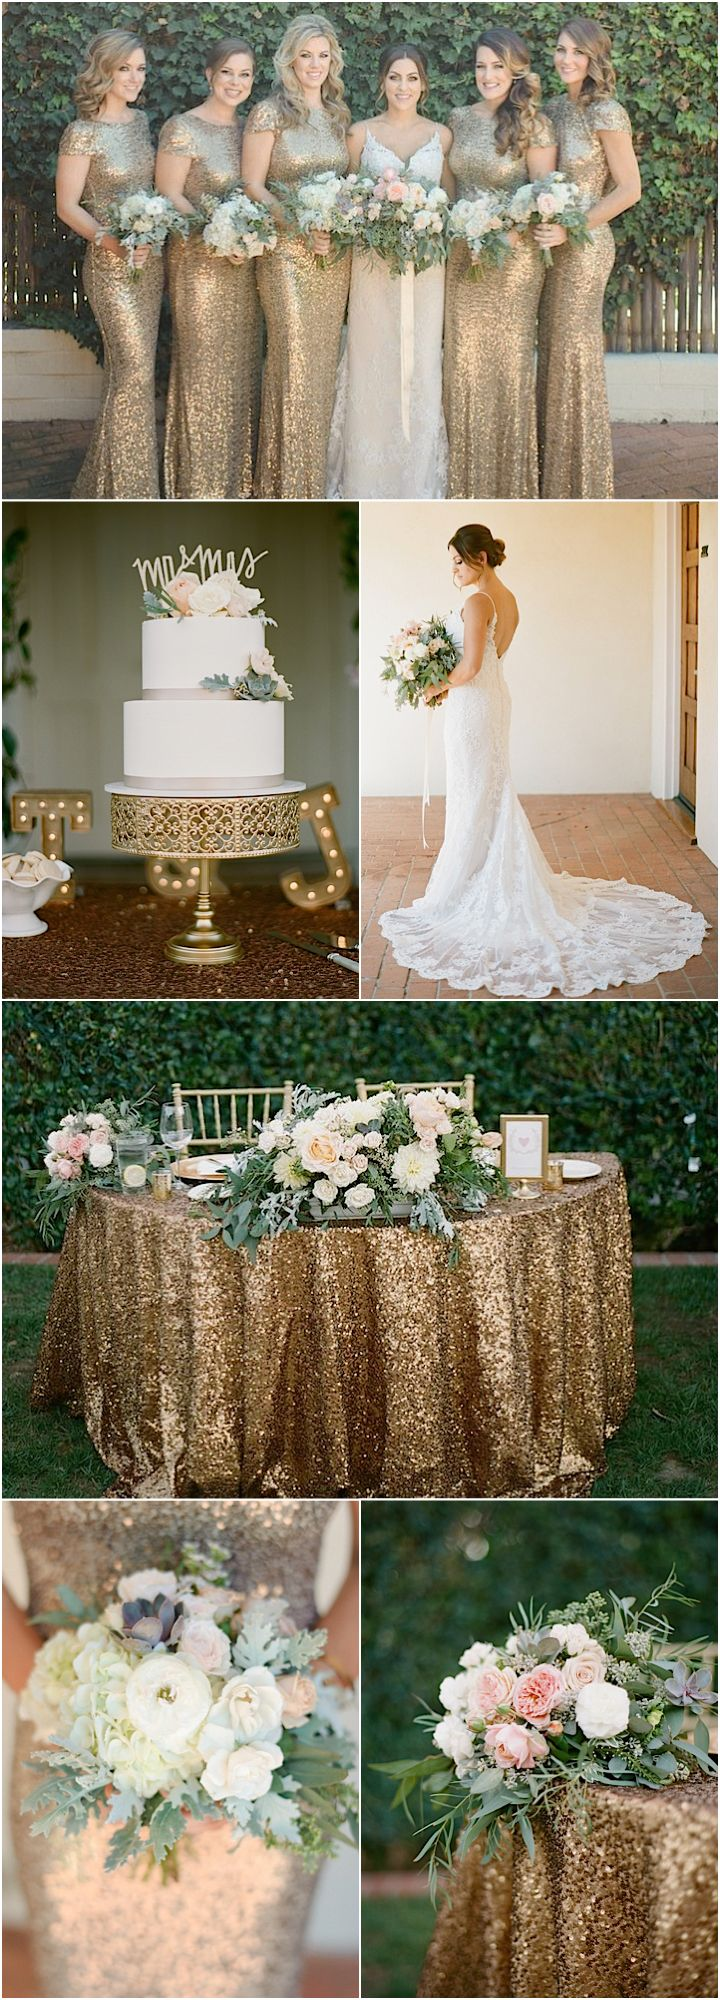 Featured Photographer: Acres of Hope Photography; classy gold wedding reception details